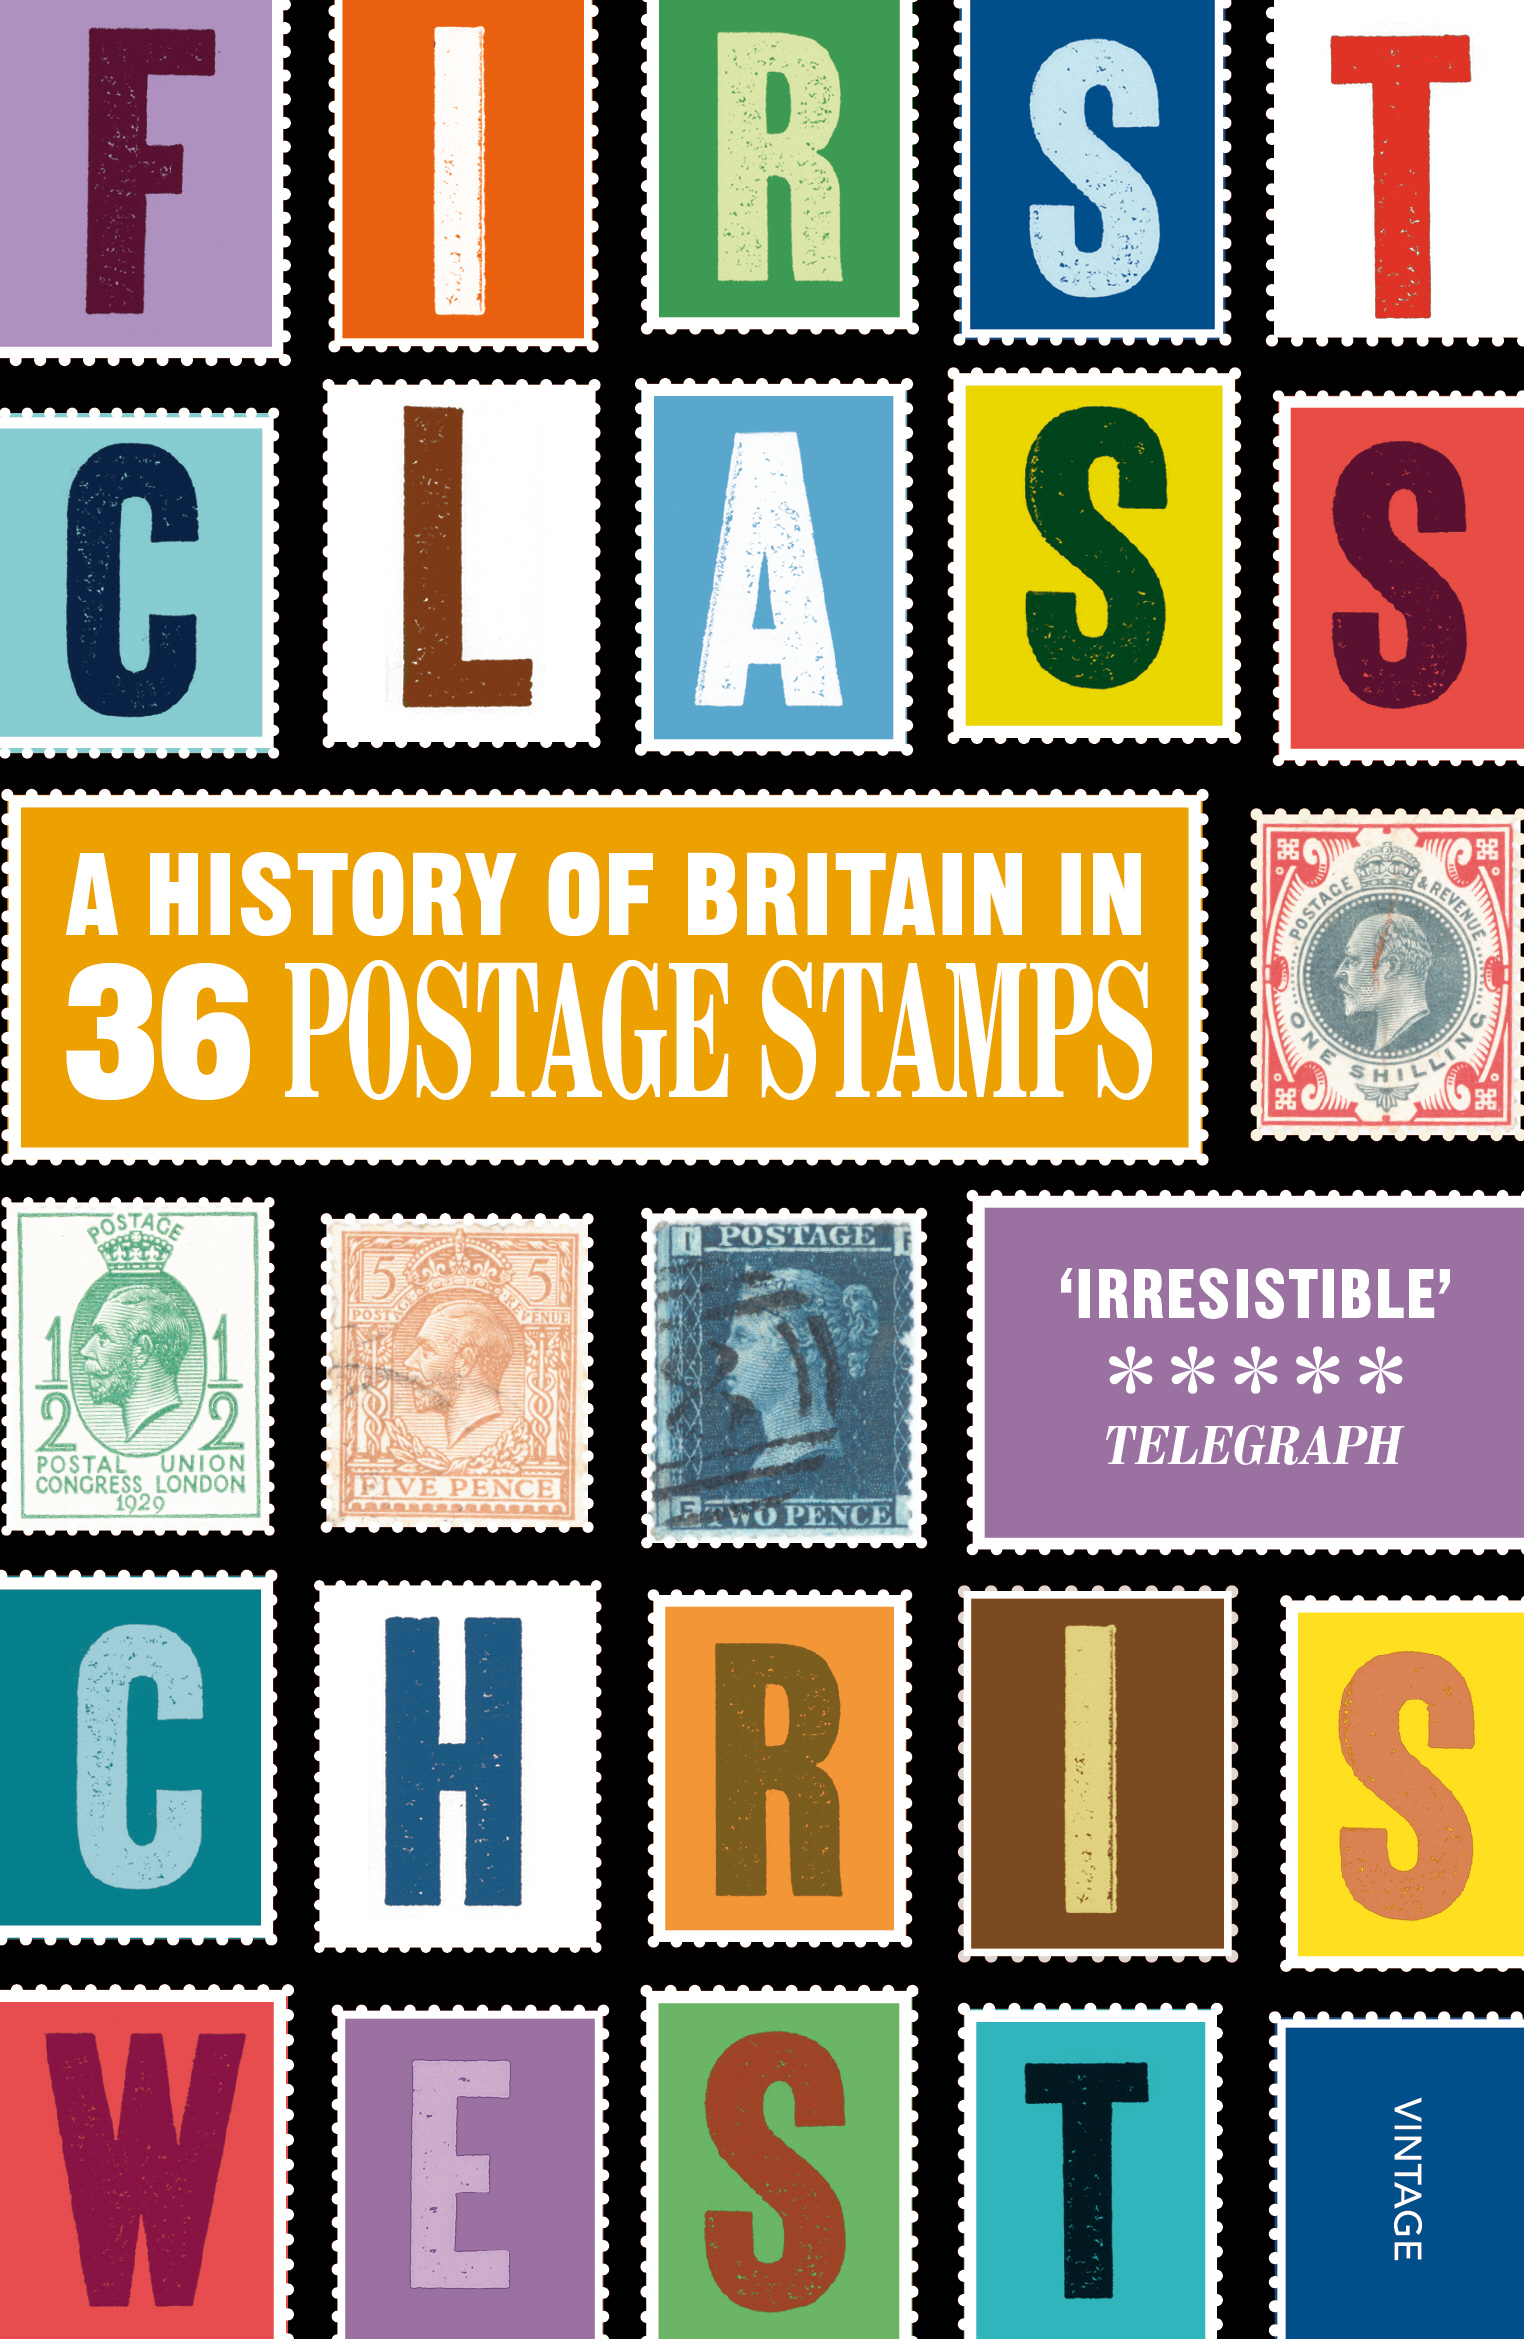 First Class A History of Britain in 36 Postage Stamps